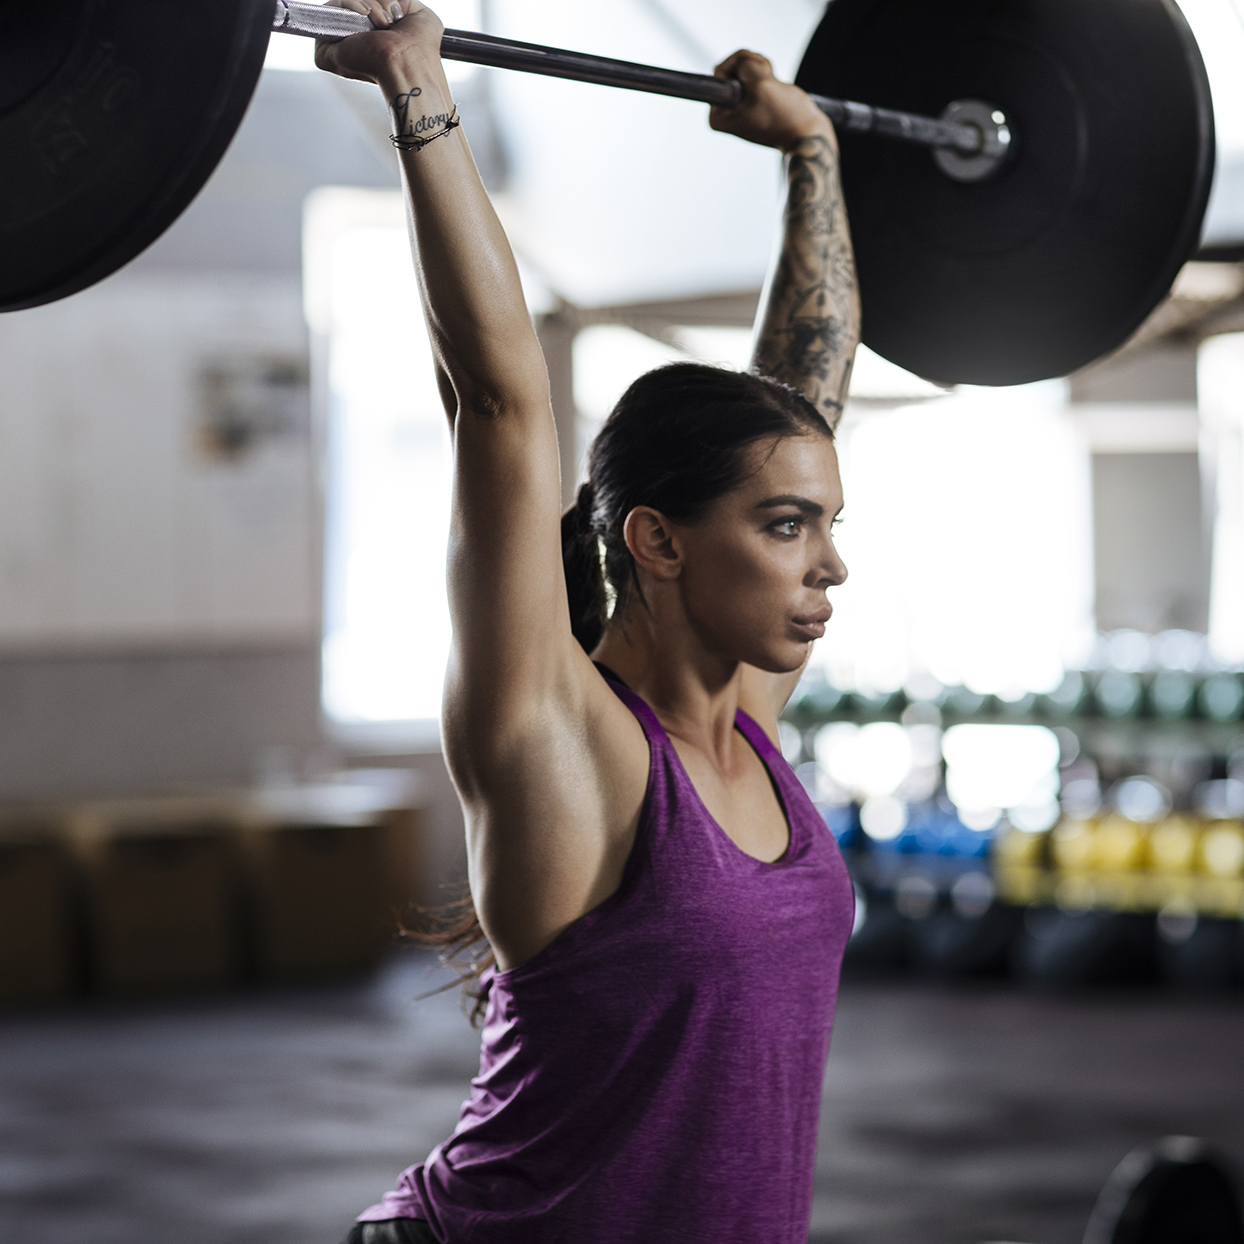 CrossFit athlete doing thrusters in Fran workout